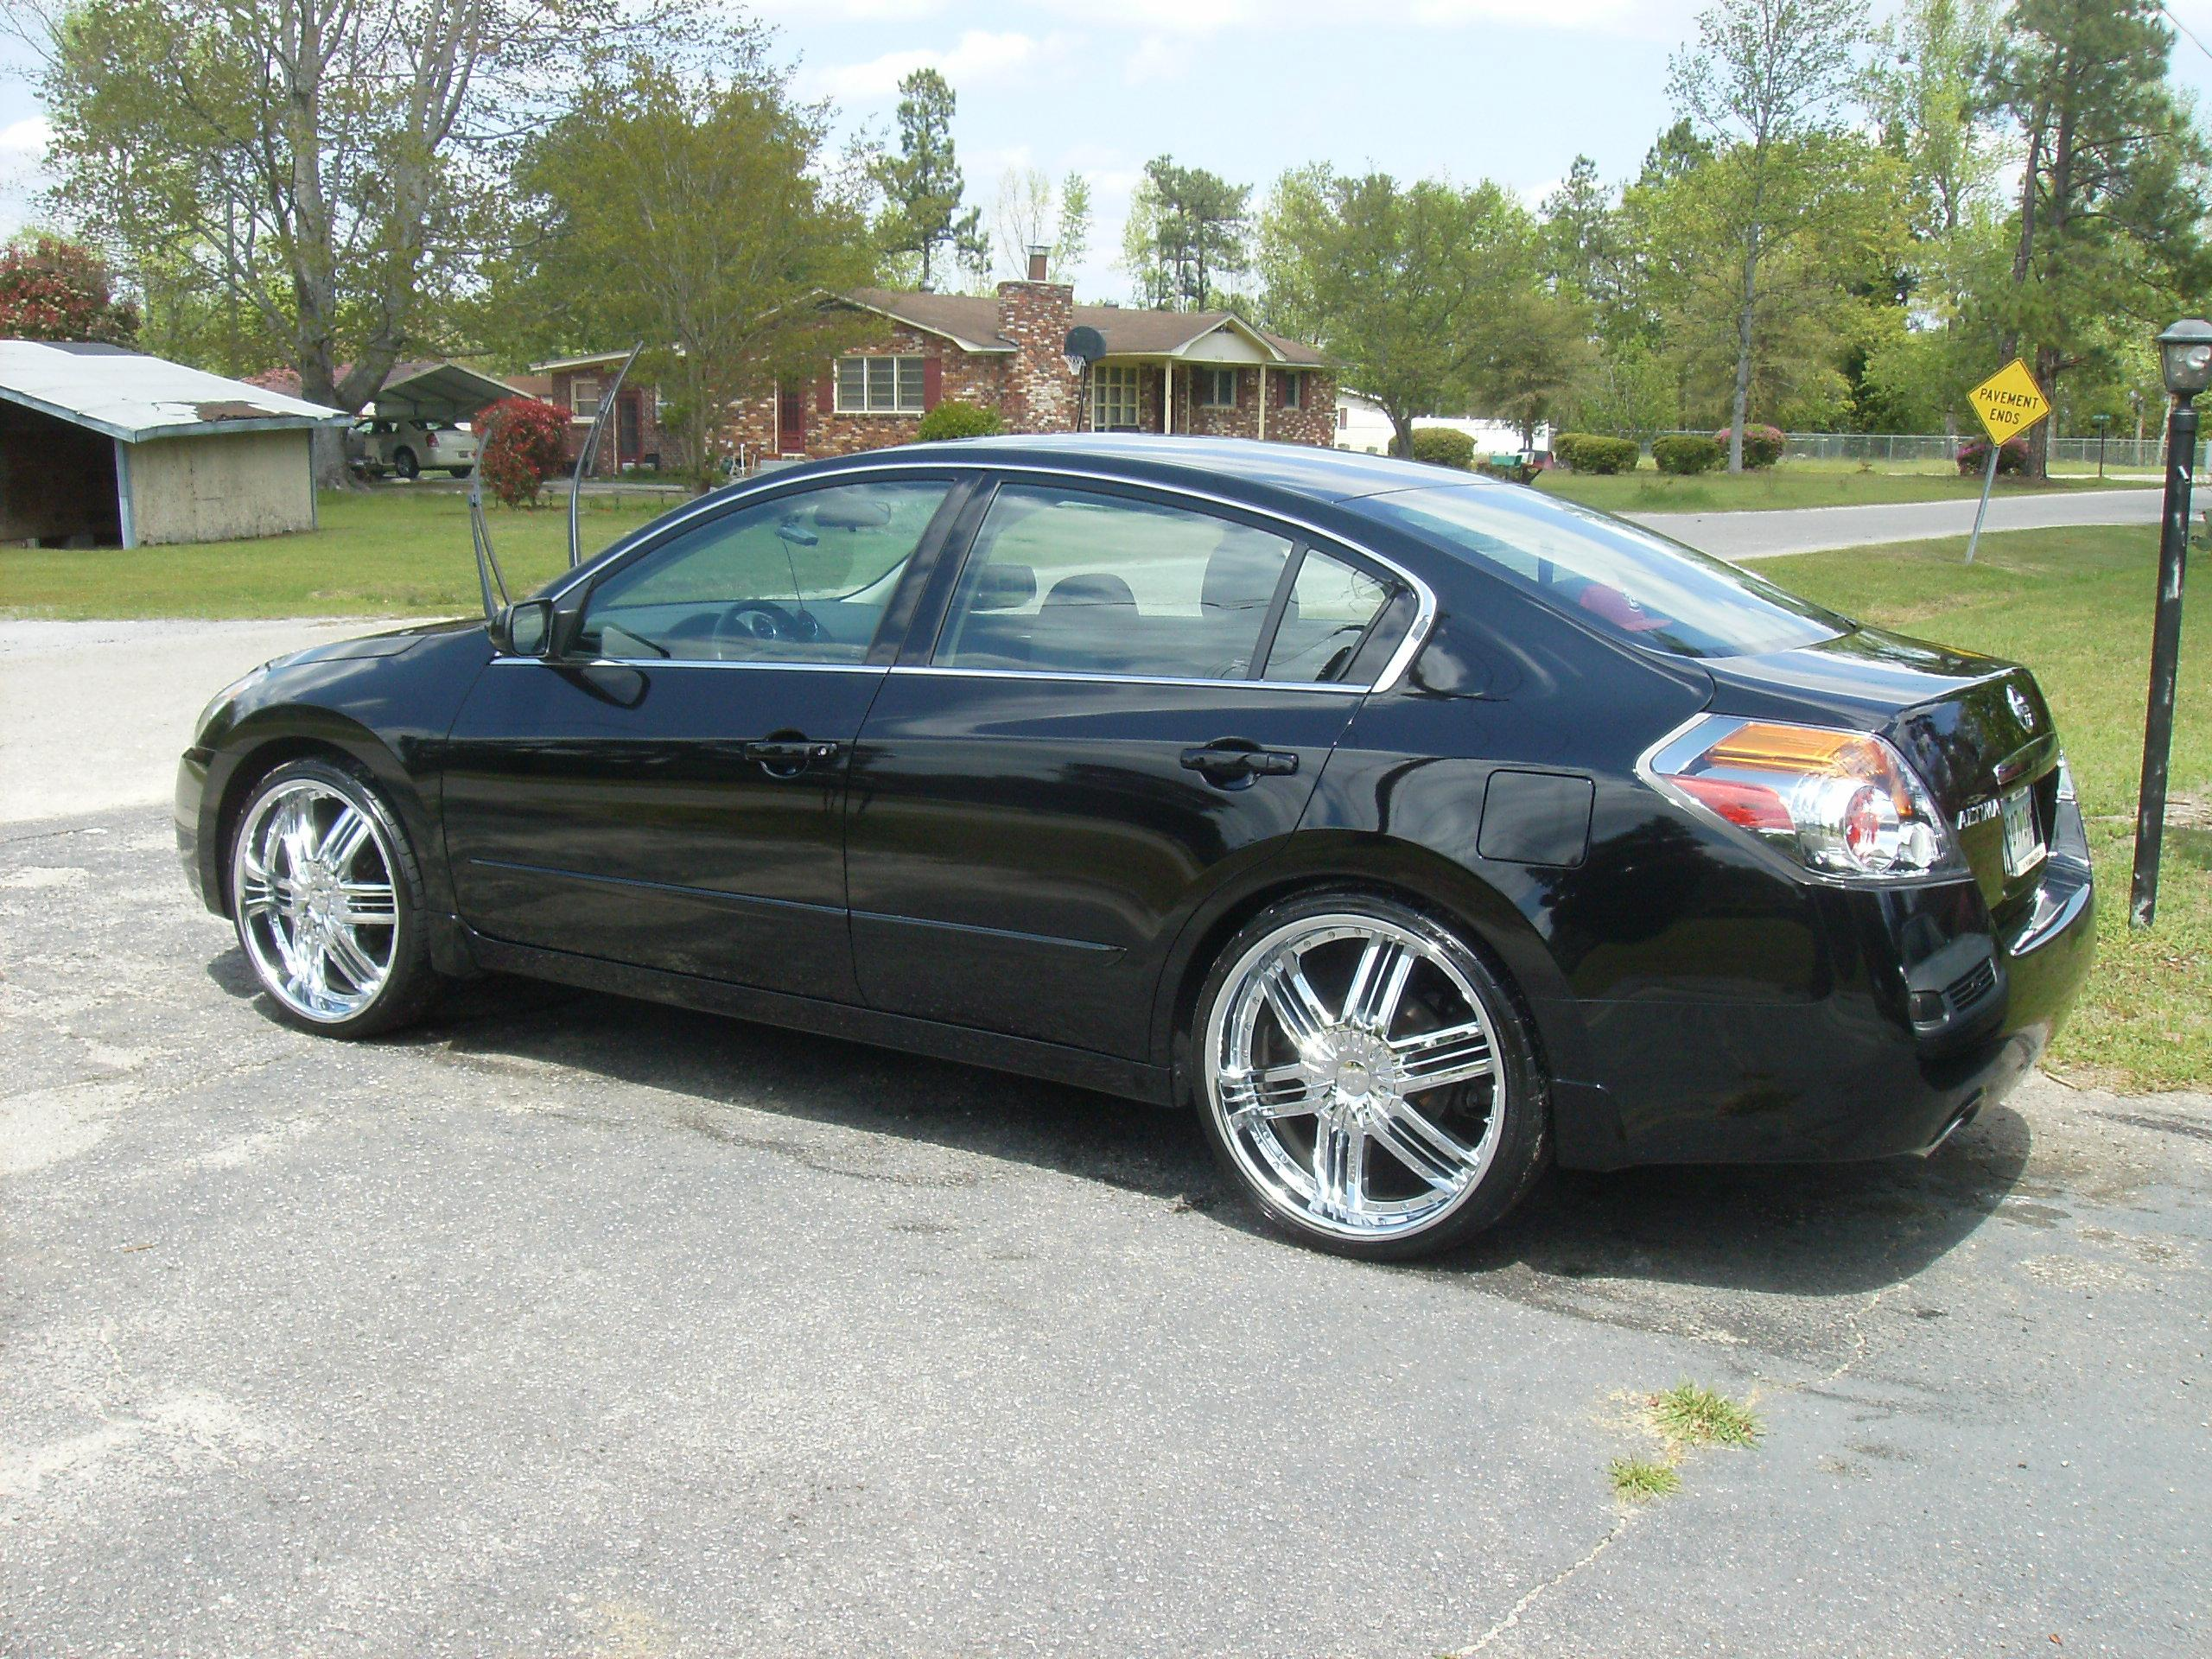 12Dmoney's 2007 Nissan Altima